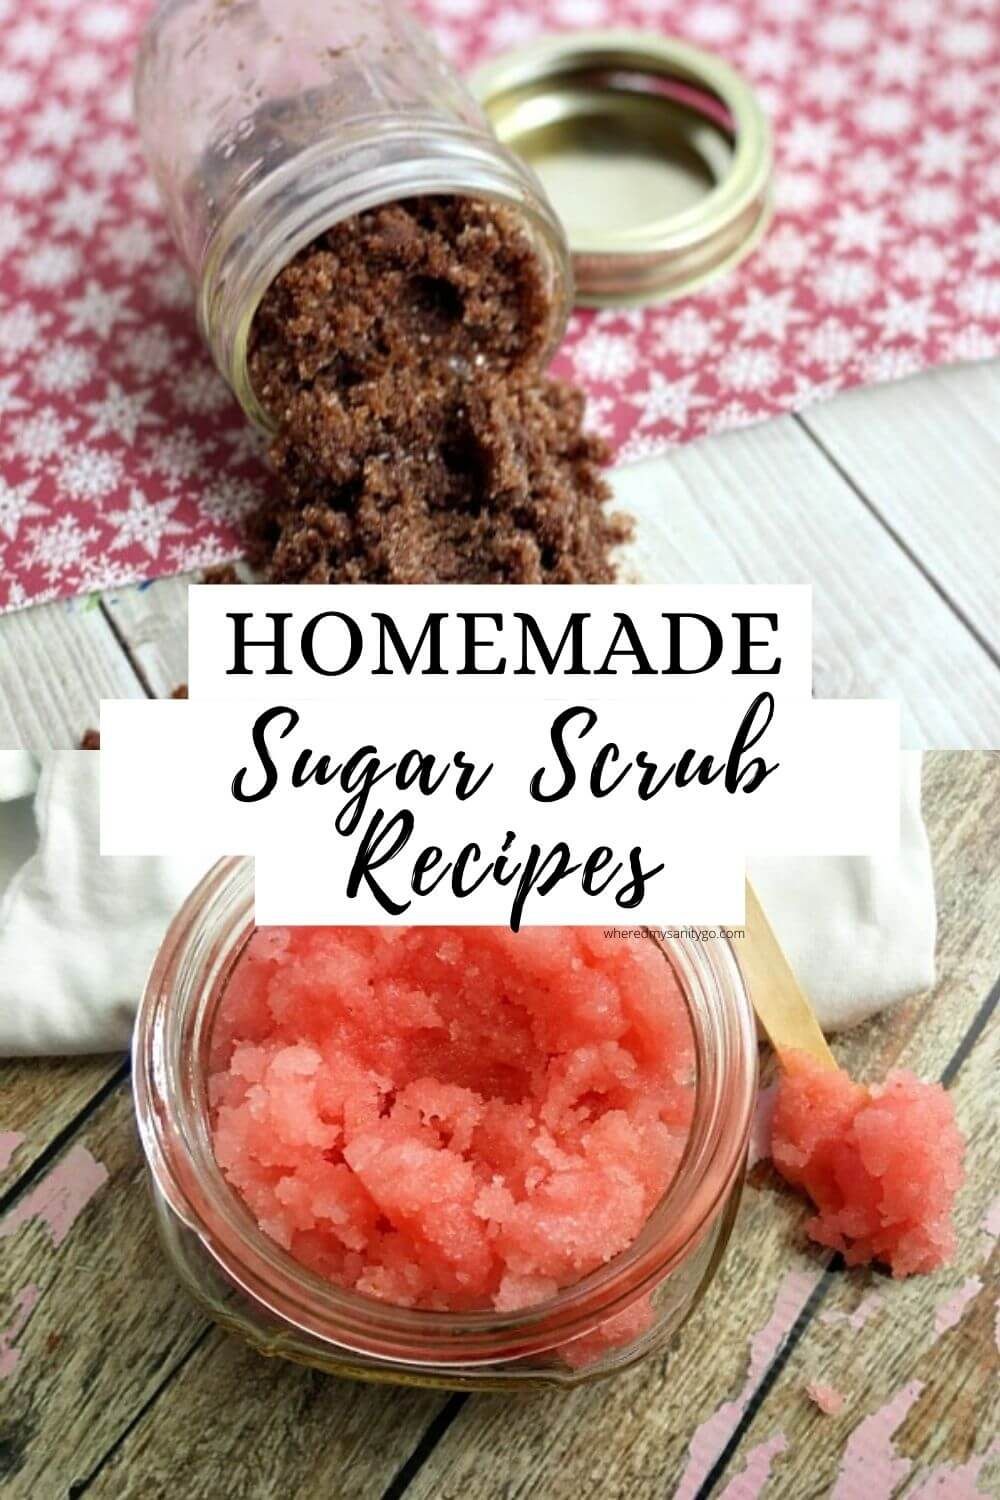 Sugar Scrub Recipes To Keep Your Skin Smooth and Exfoliated